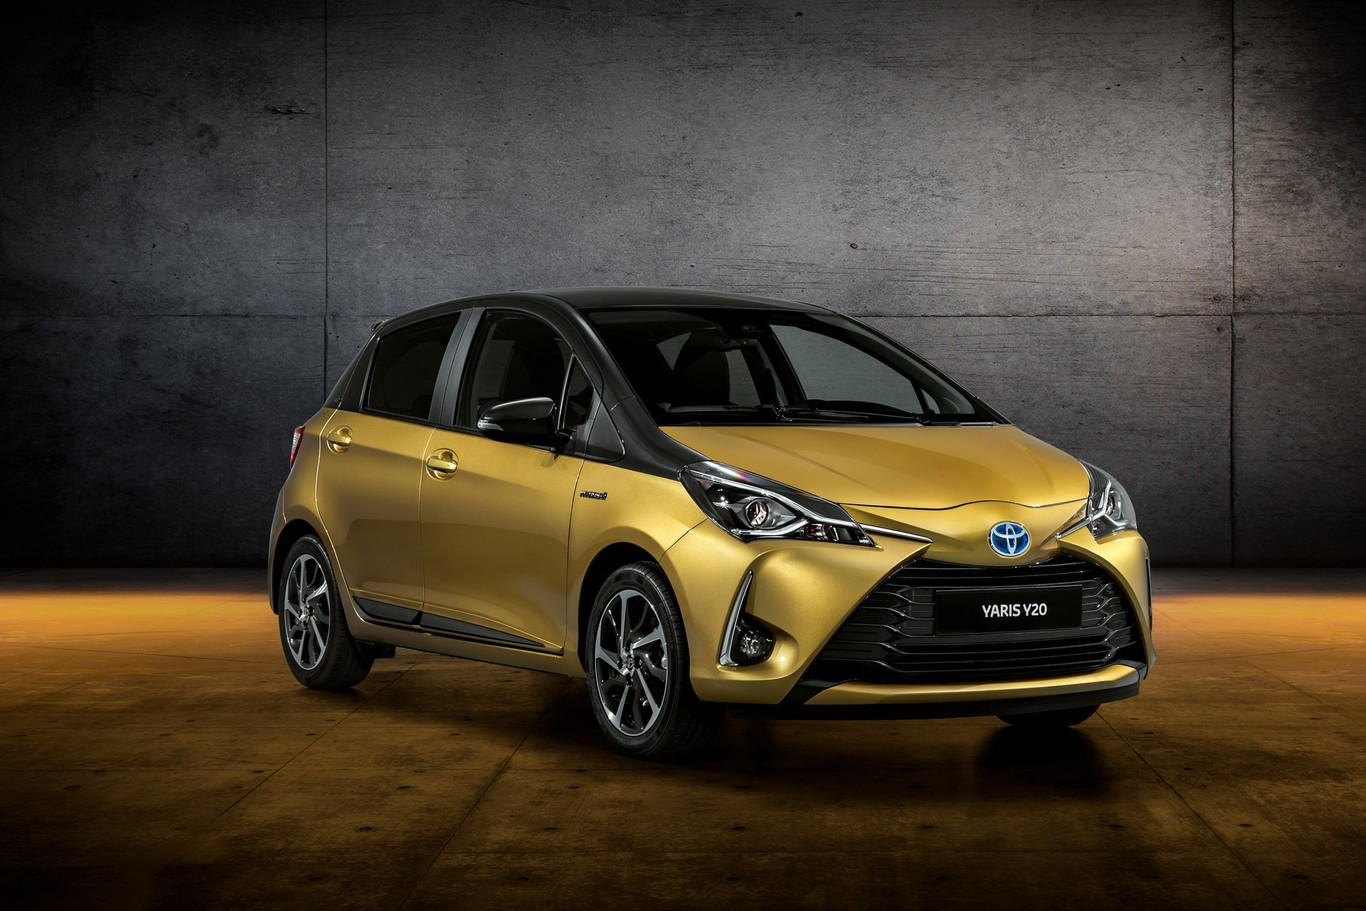 El mismo color del primer Yaris